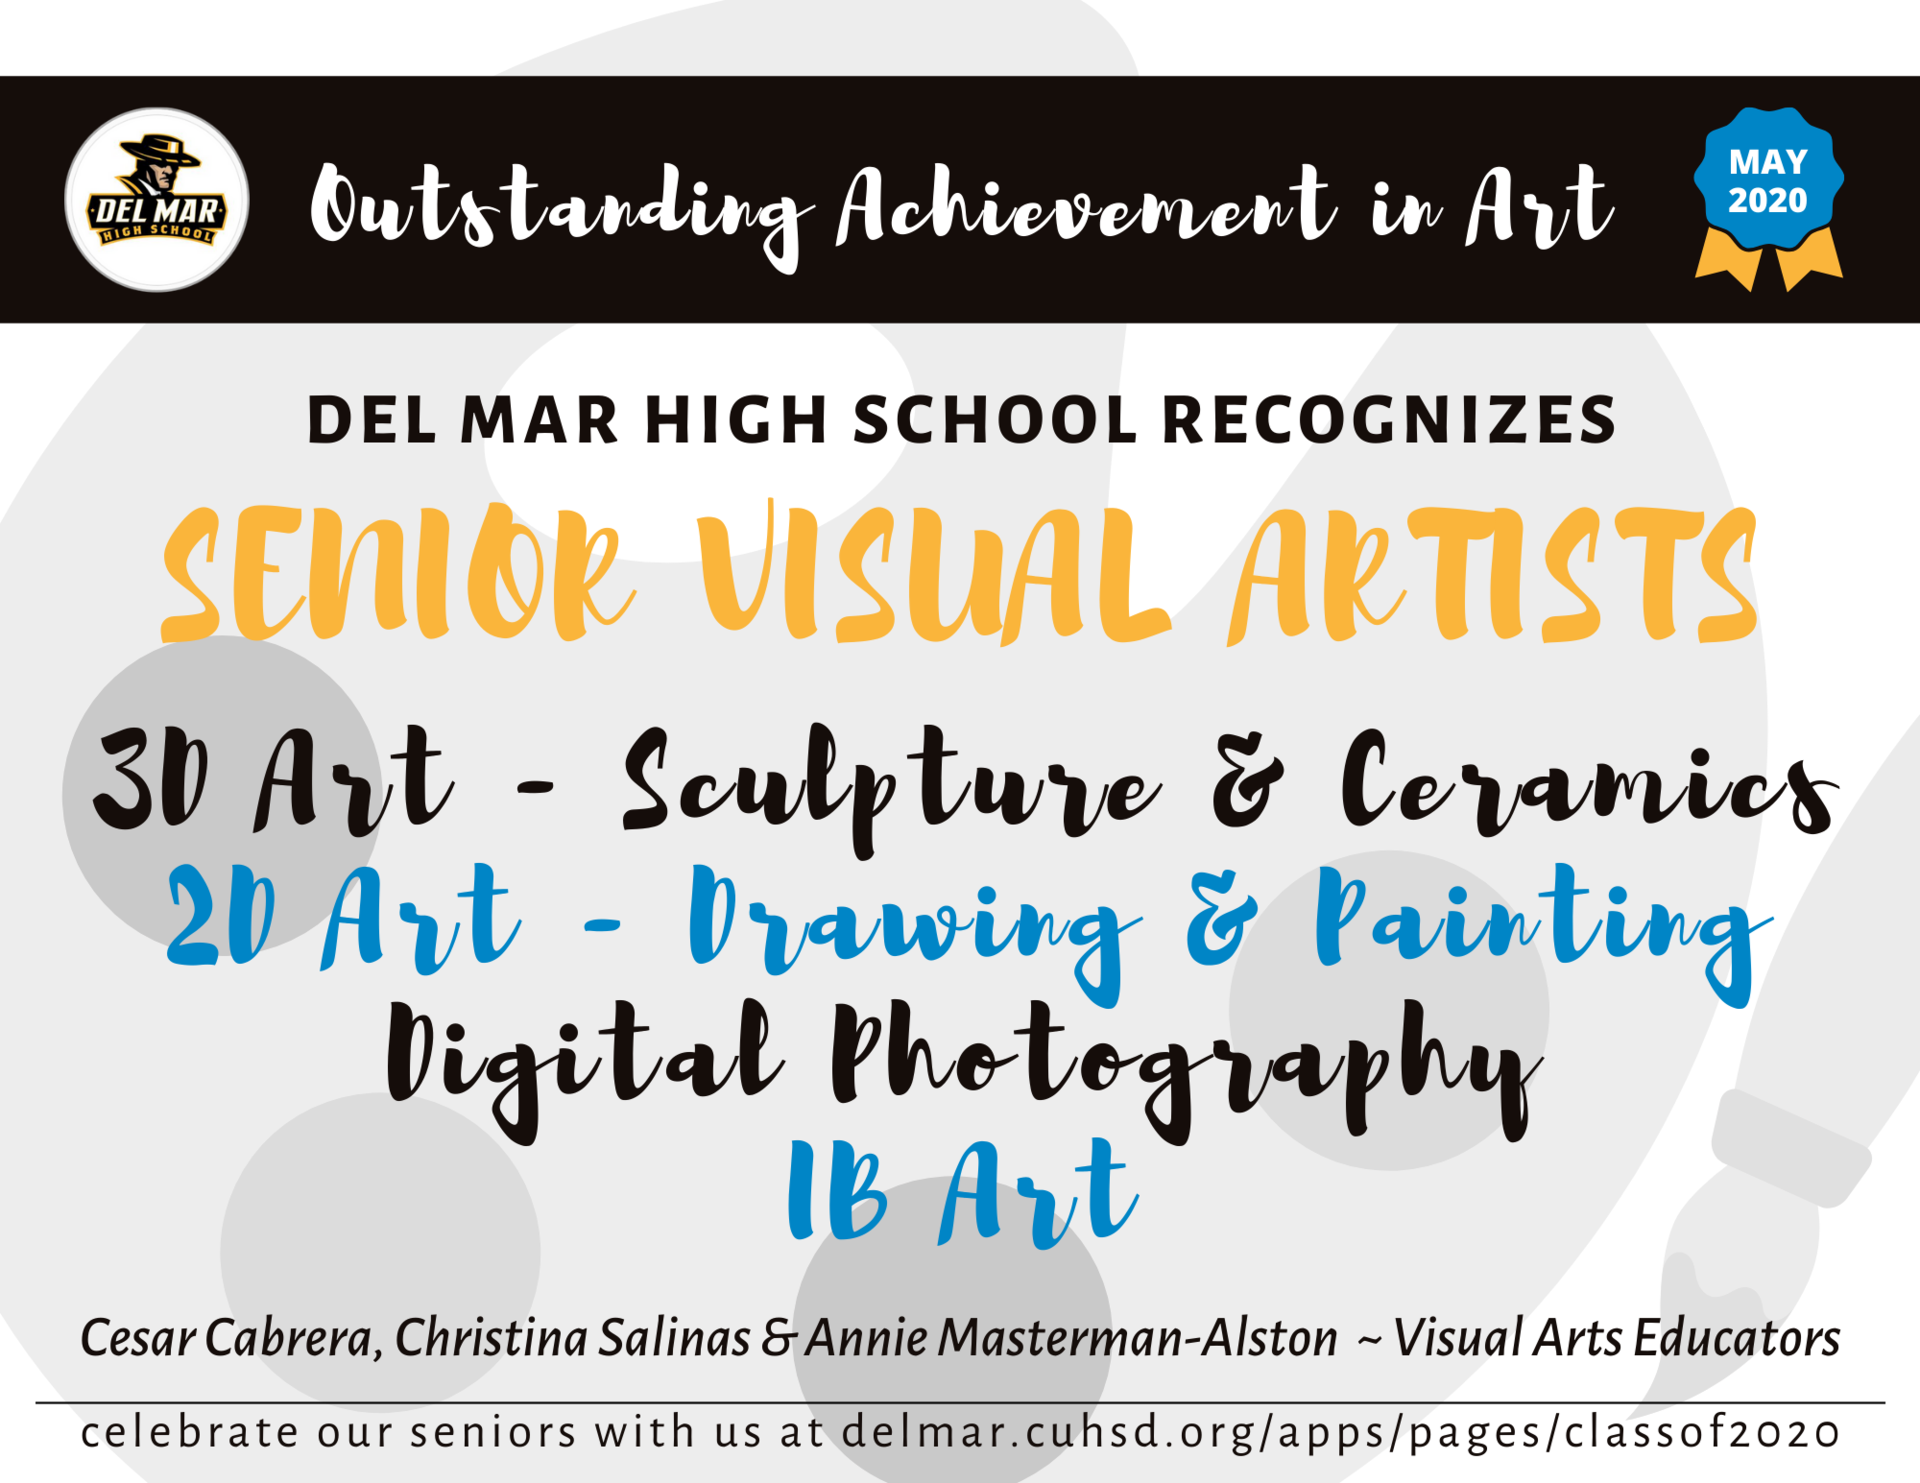 image of senior visual artist recognitions intro